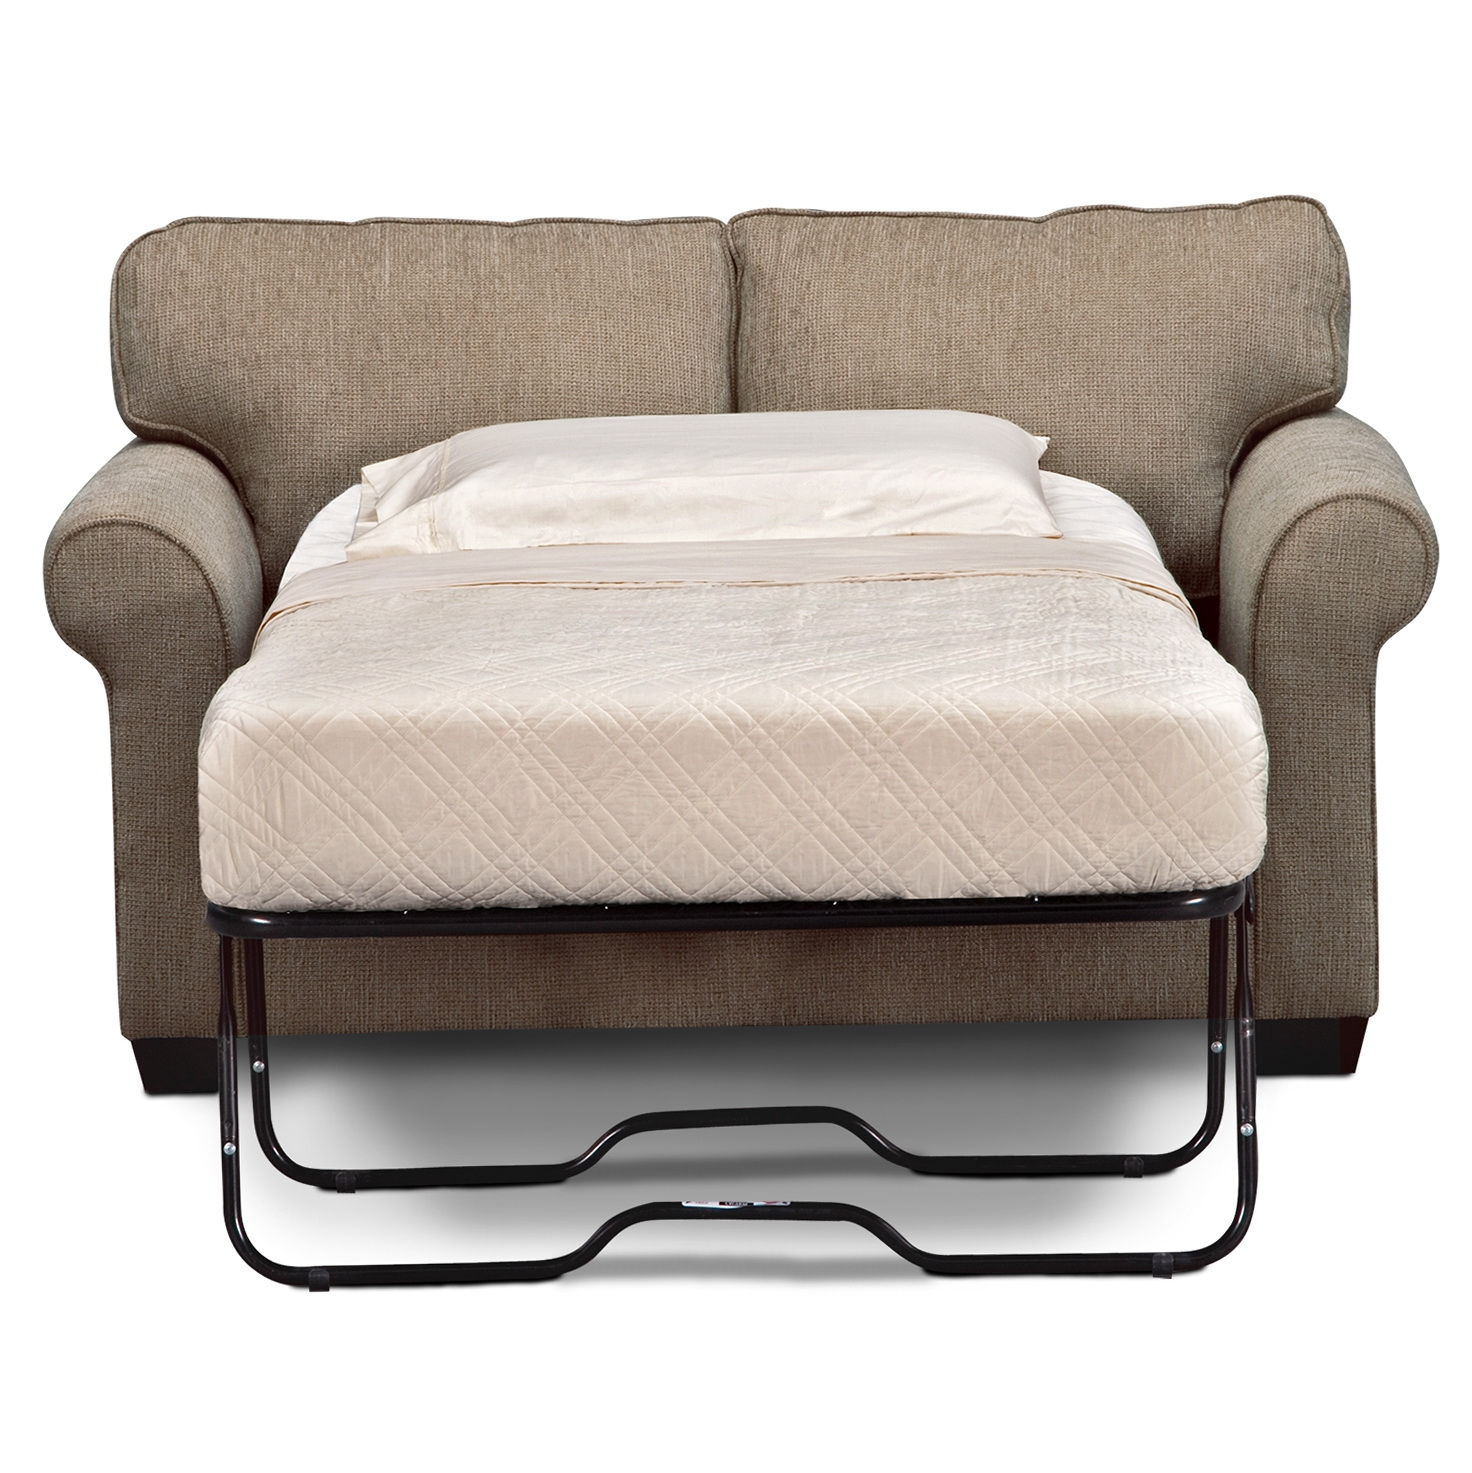 Twin Sofa Sleeper Mattress